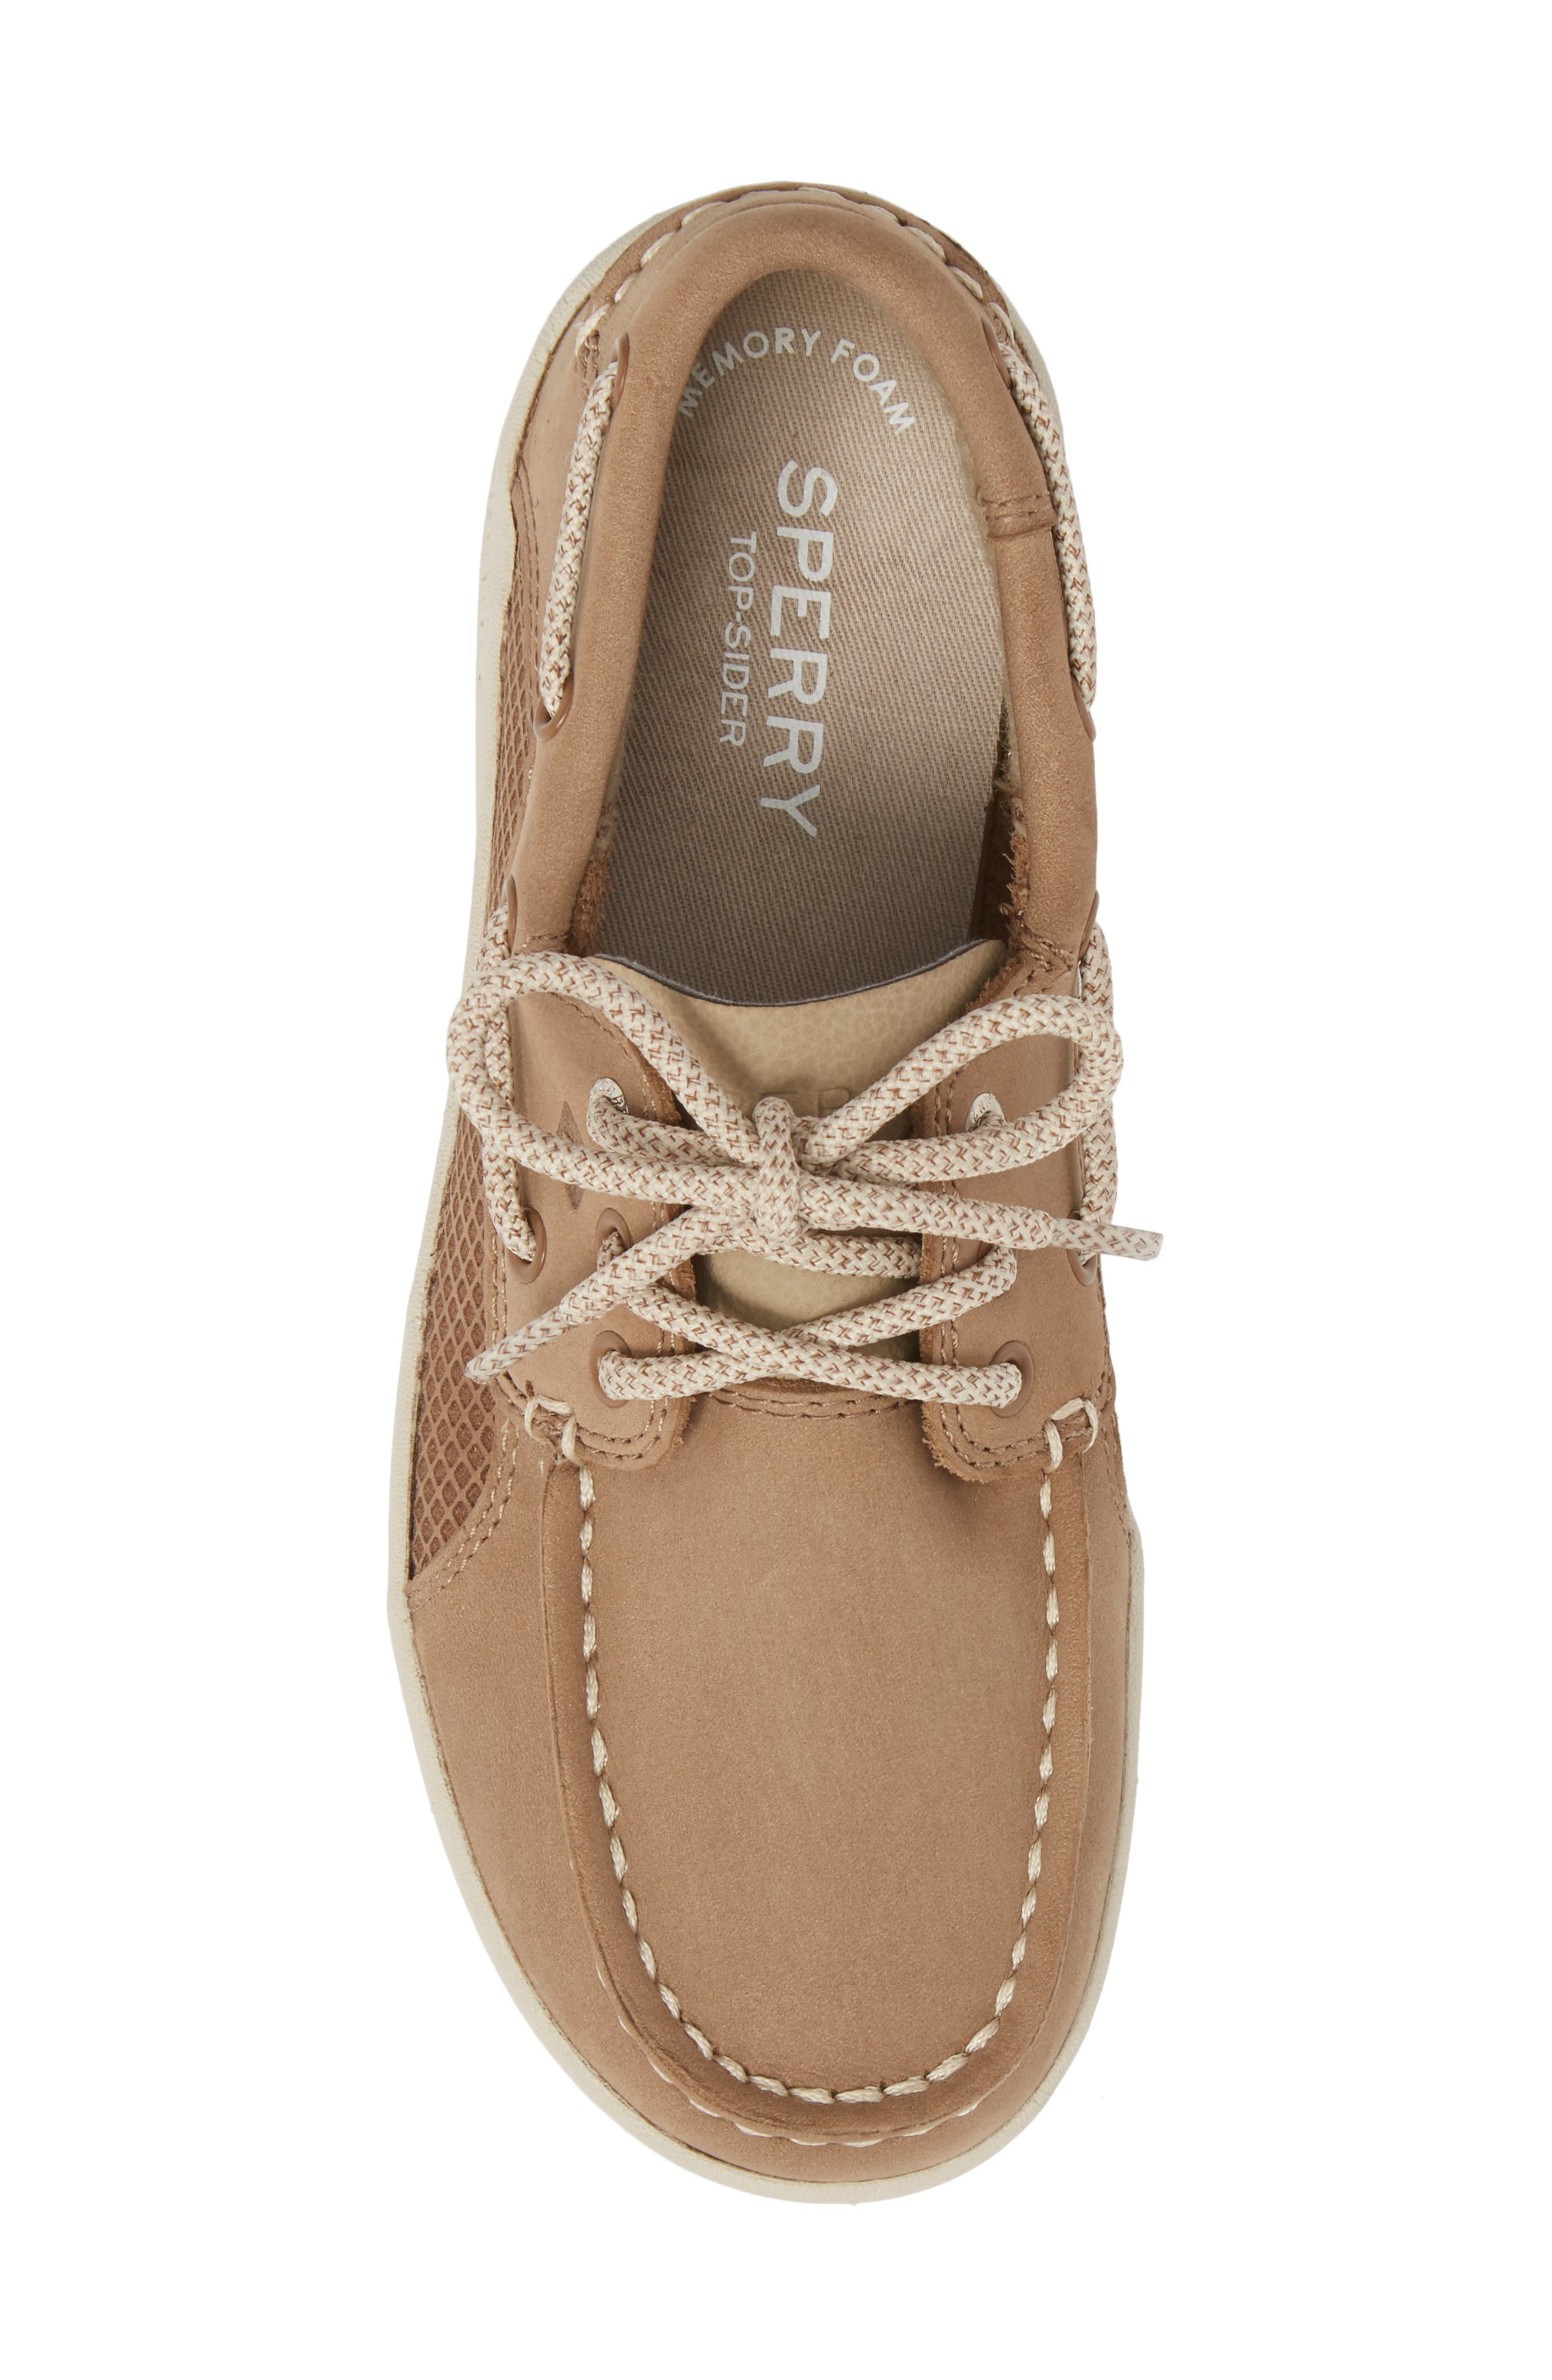 Sperry Gamefish Boat Shoe,                             Alternate thumbnail 5, color,                             270